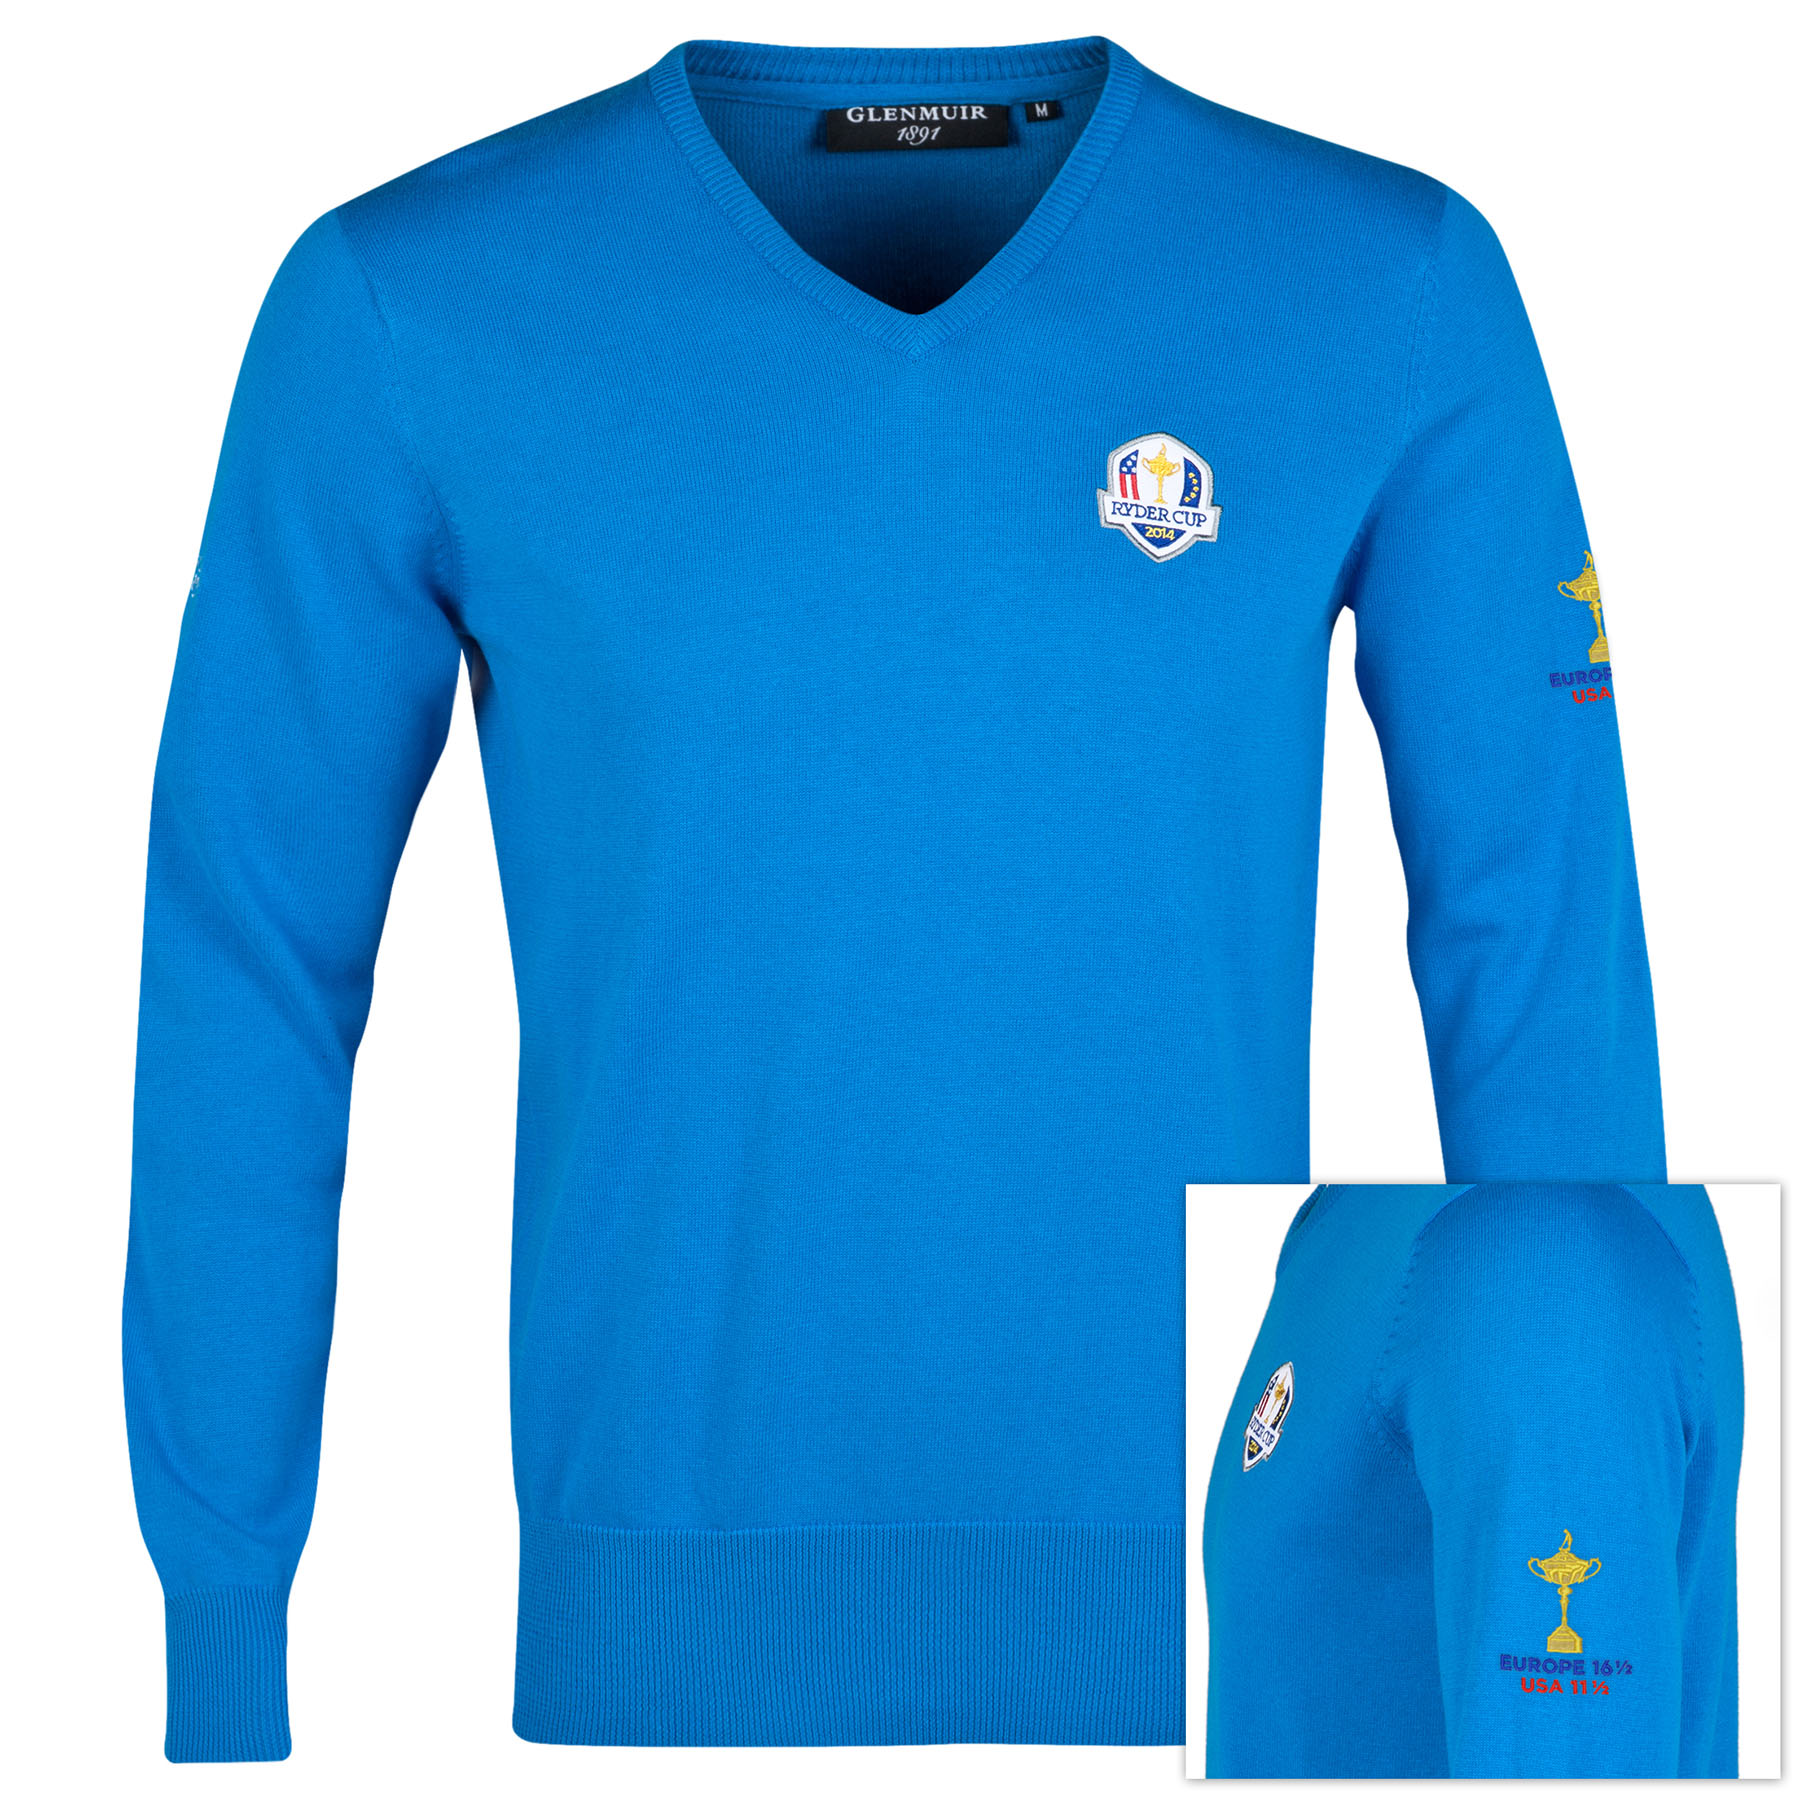 The 2014 Ryder Cup Glenmuir Winners Sweater - Saltire Blue